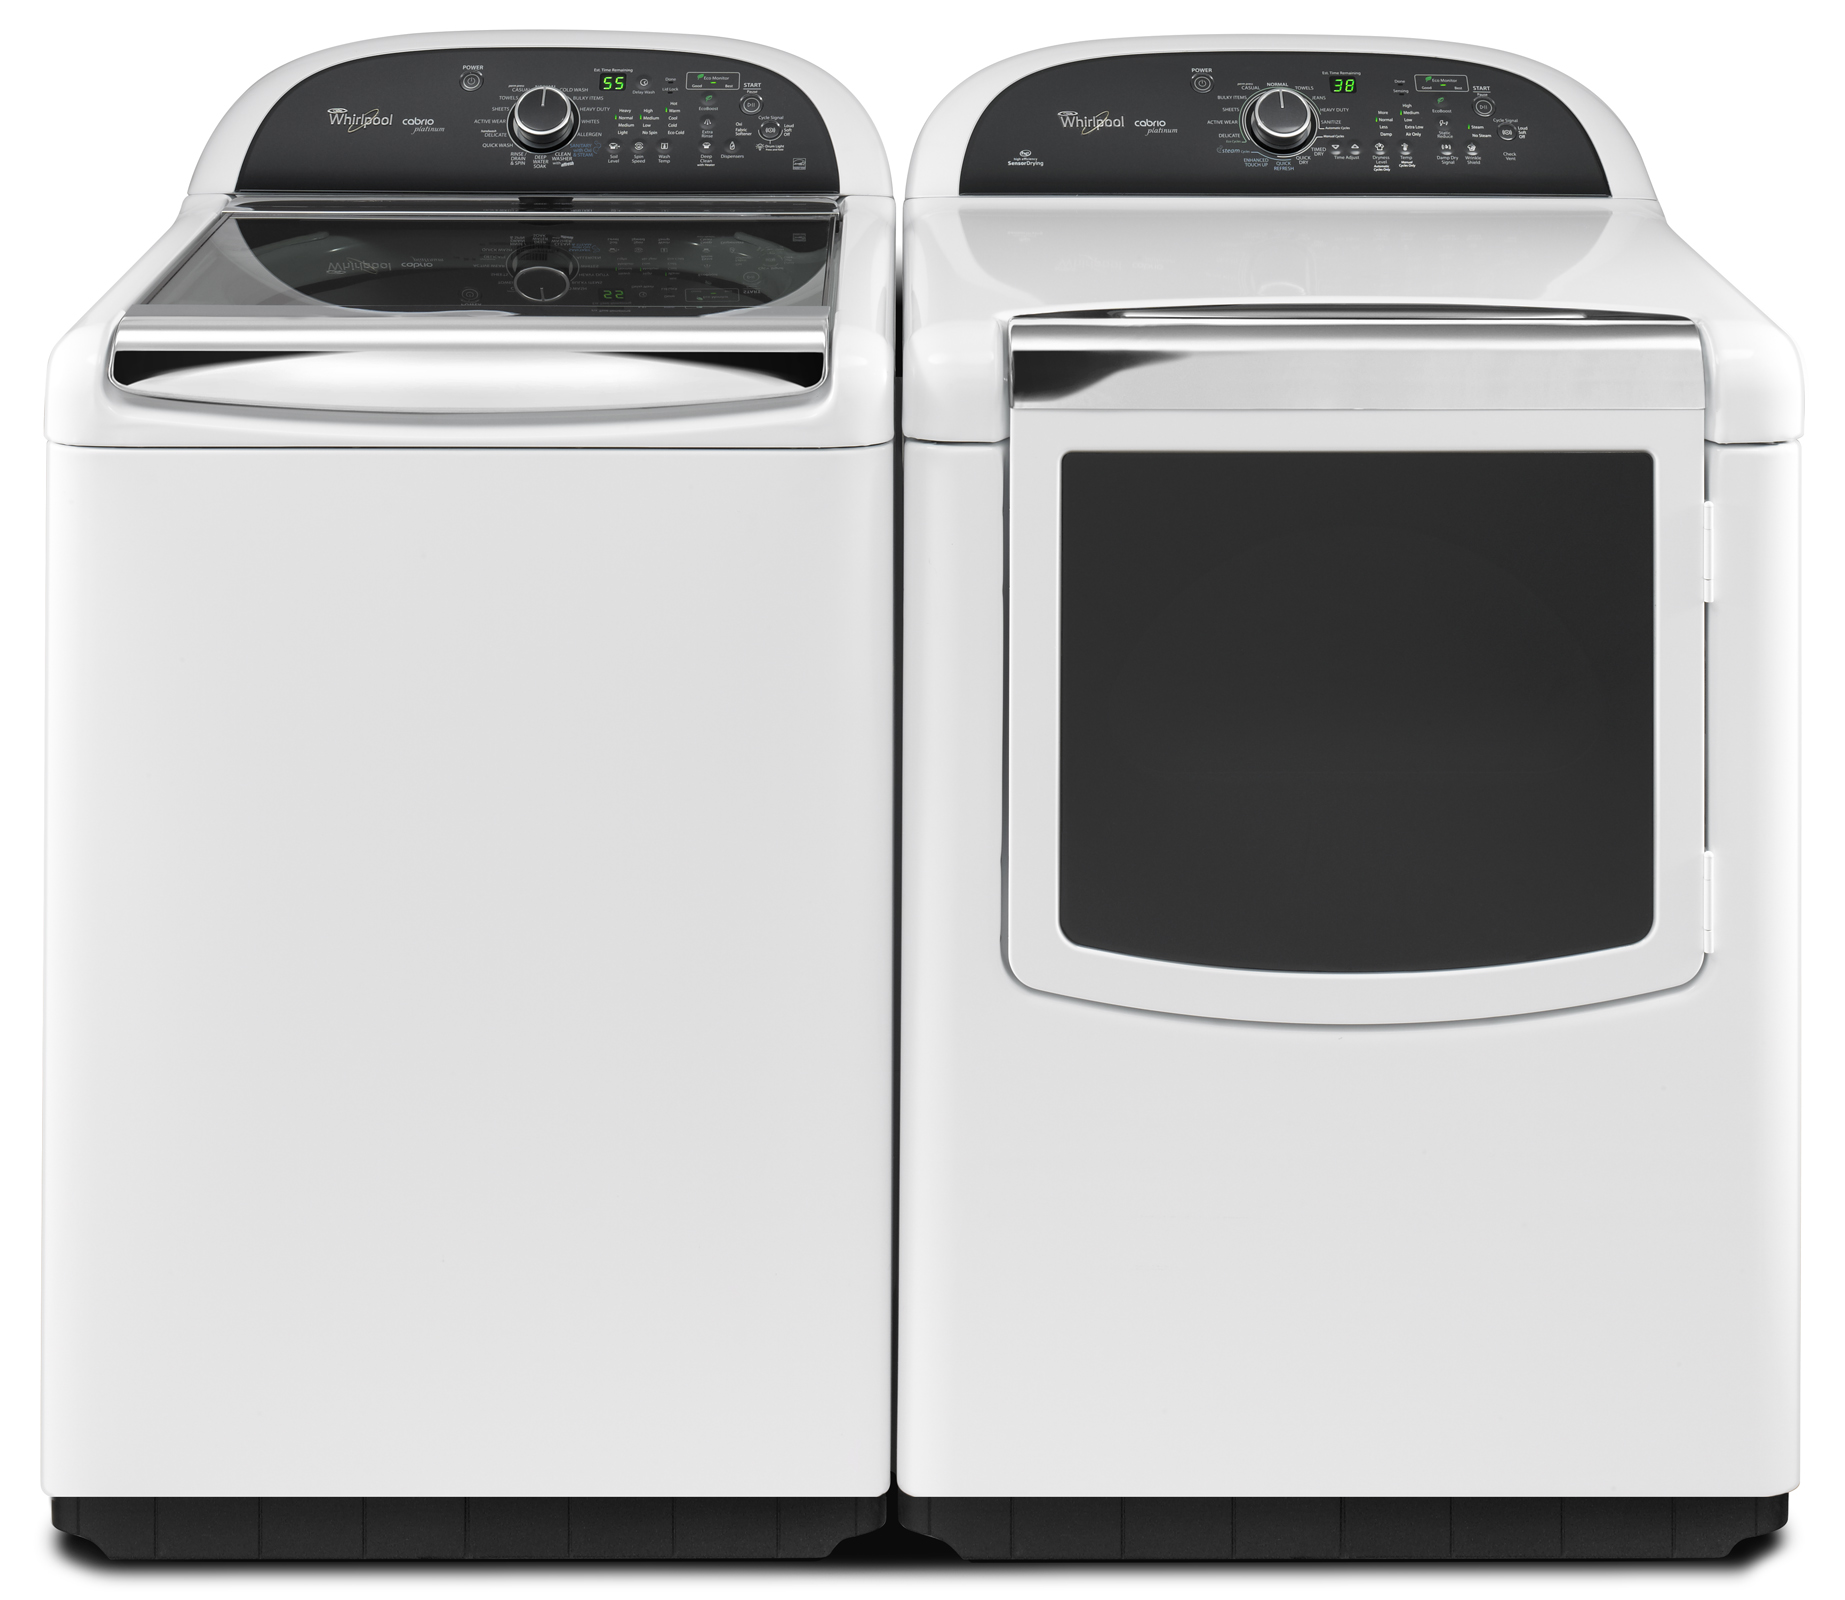 Whirlpool 7.6 cu. ft. Cabrio® Platinum Electric Dryer w/ Steam-Enhanced Cycles - White